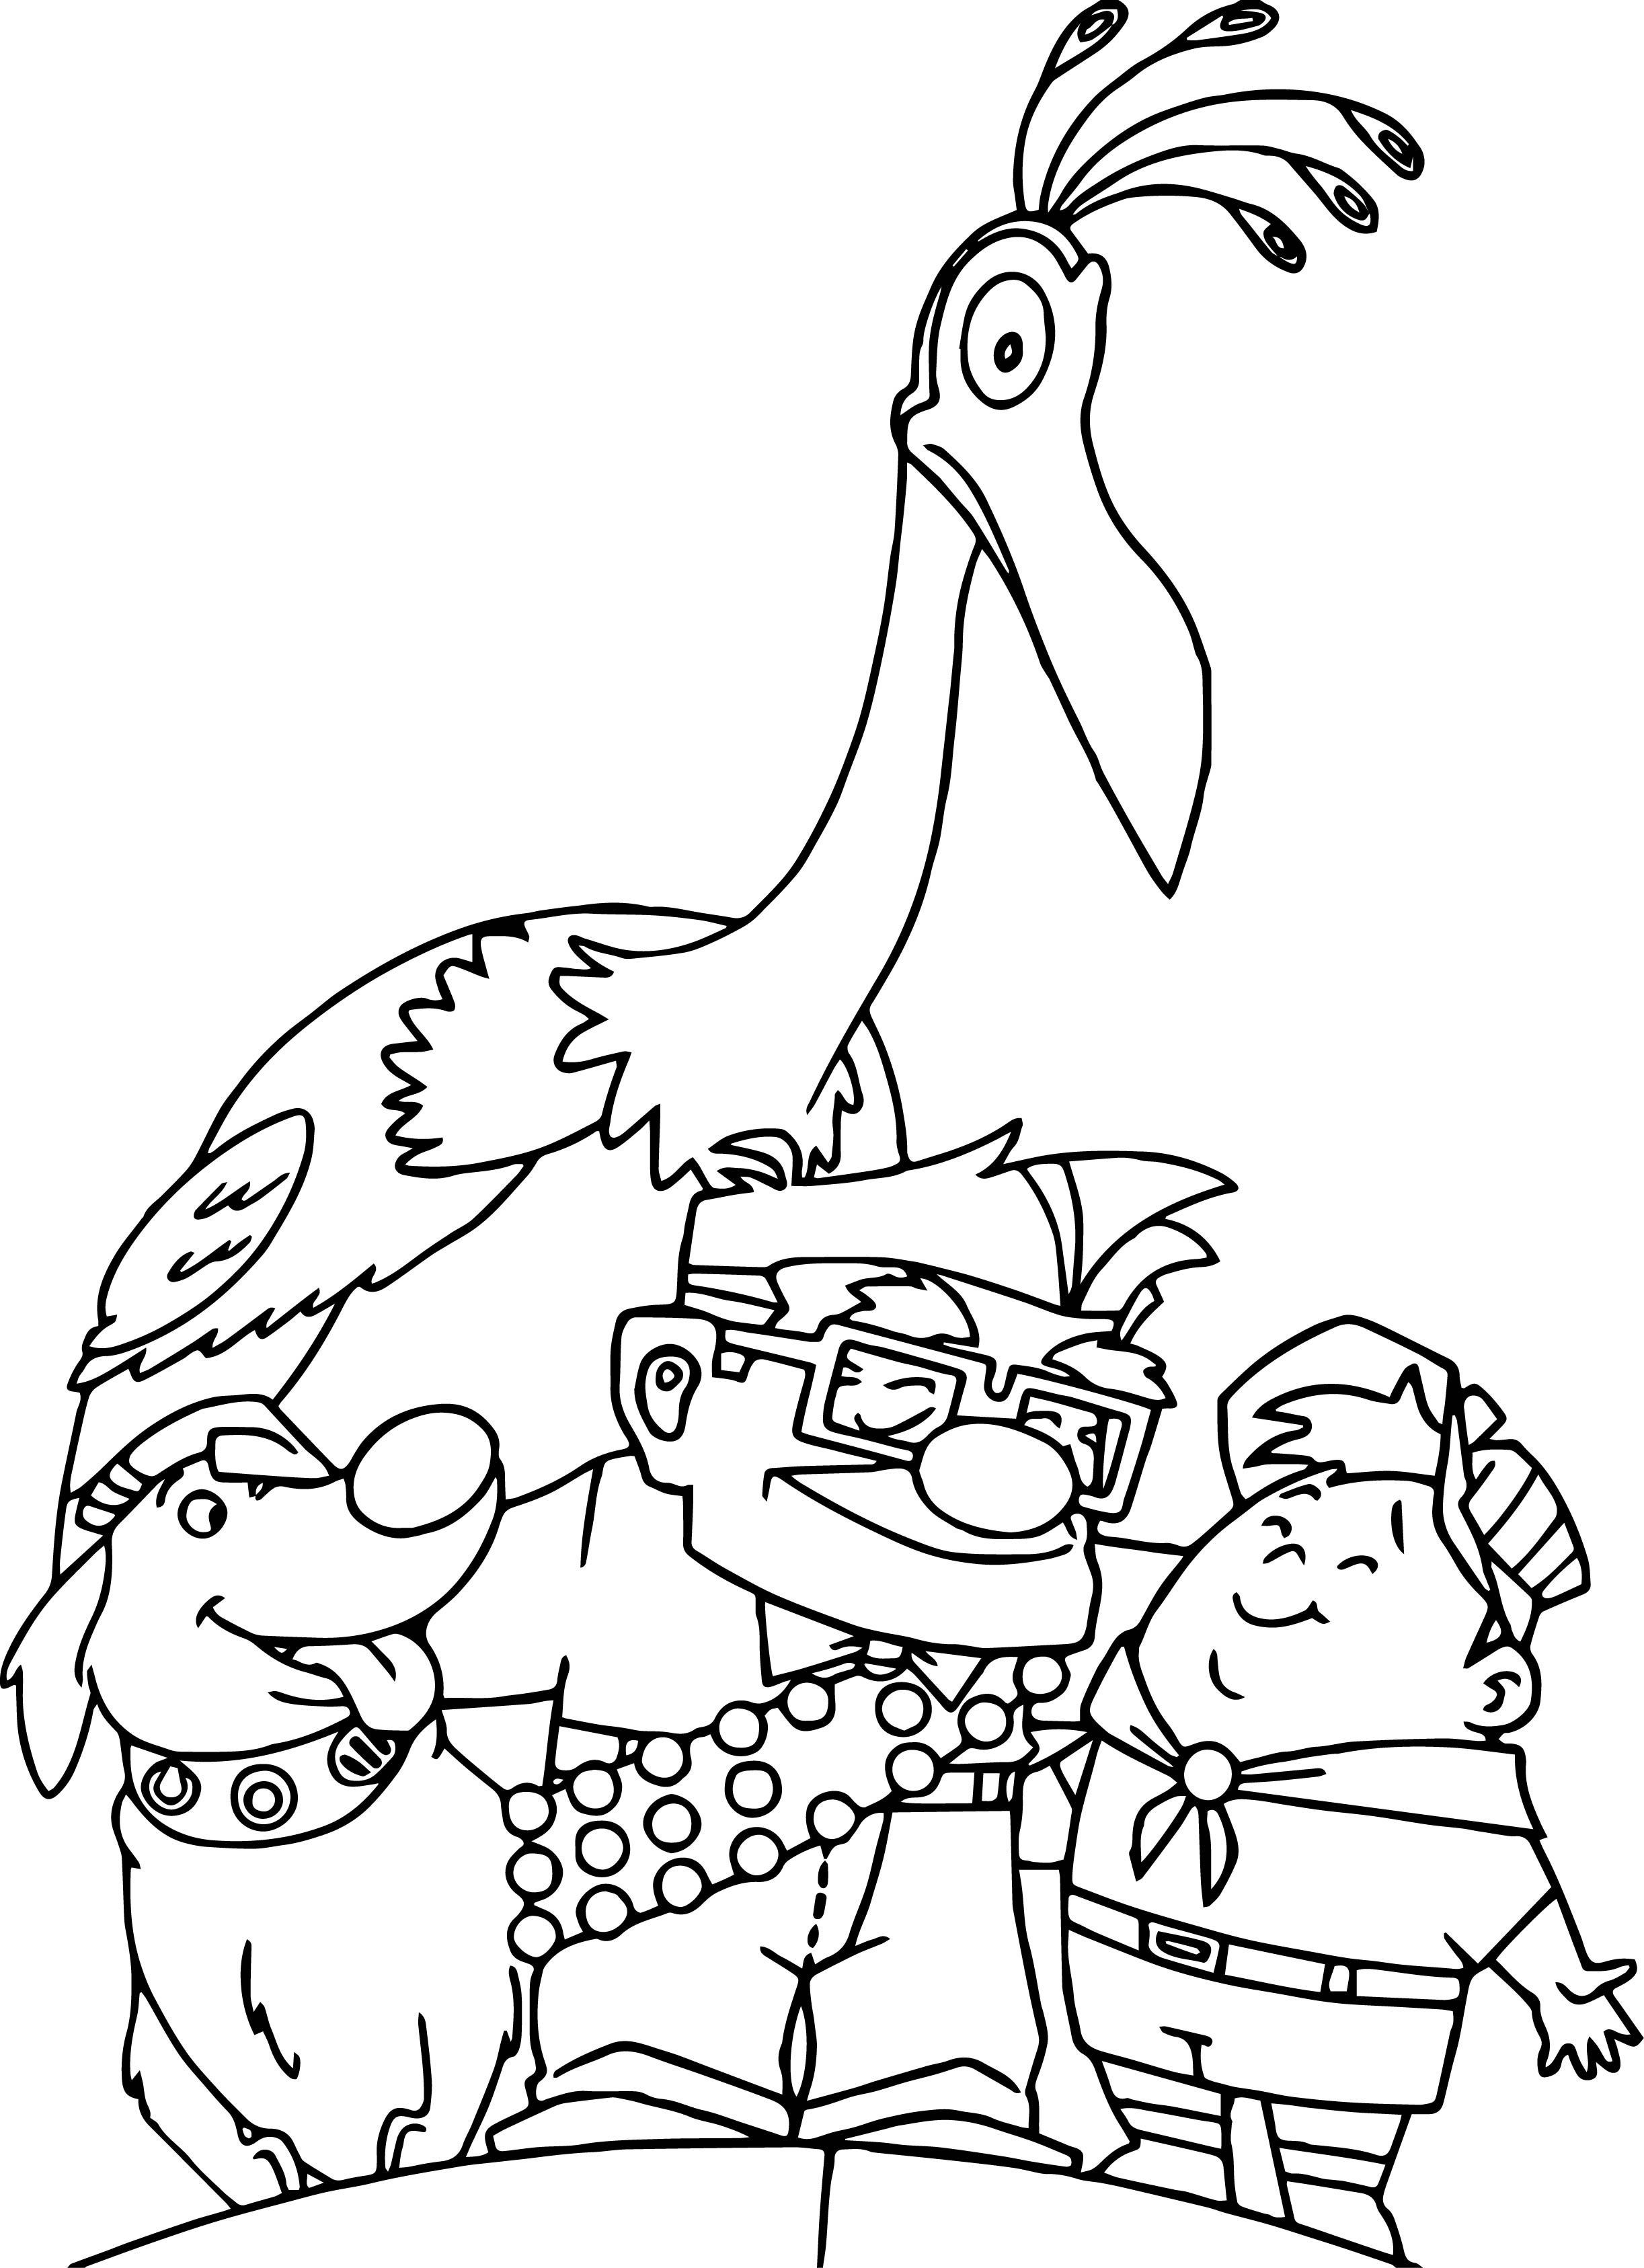 Disney Carl And Ellie Coloring Pages - Coloring Pages Ideas